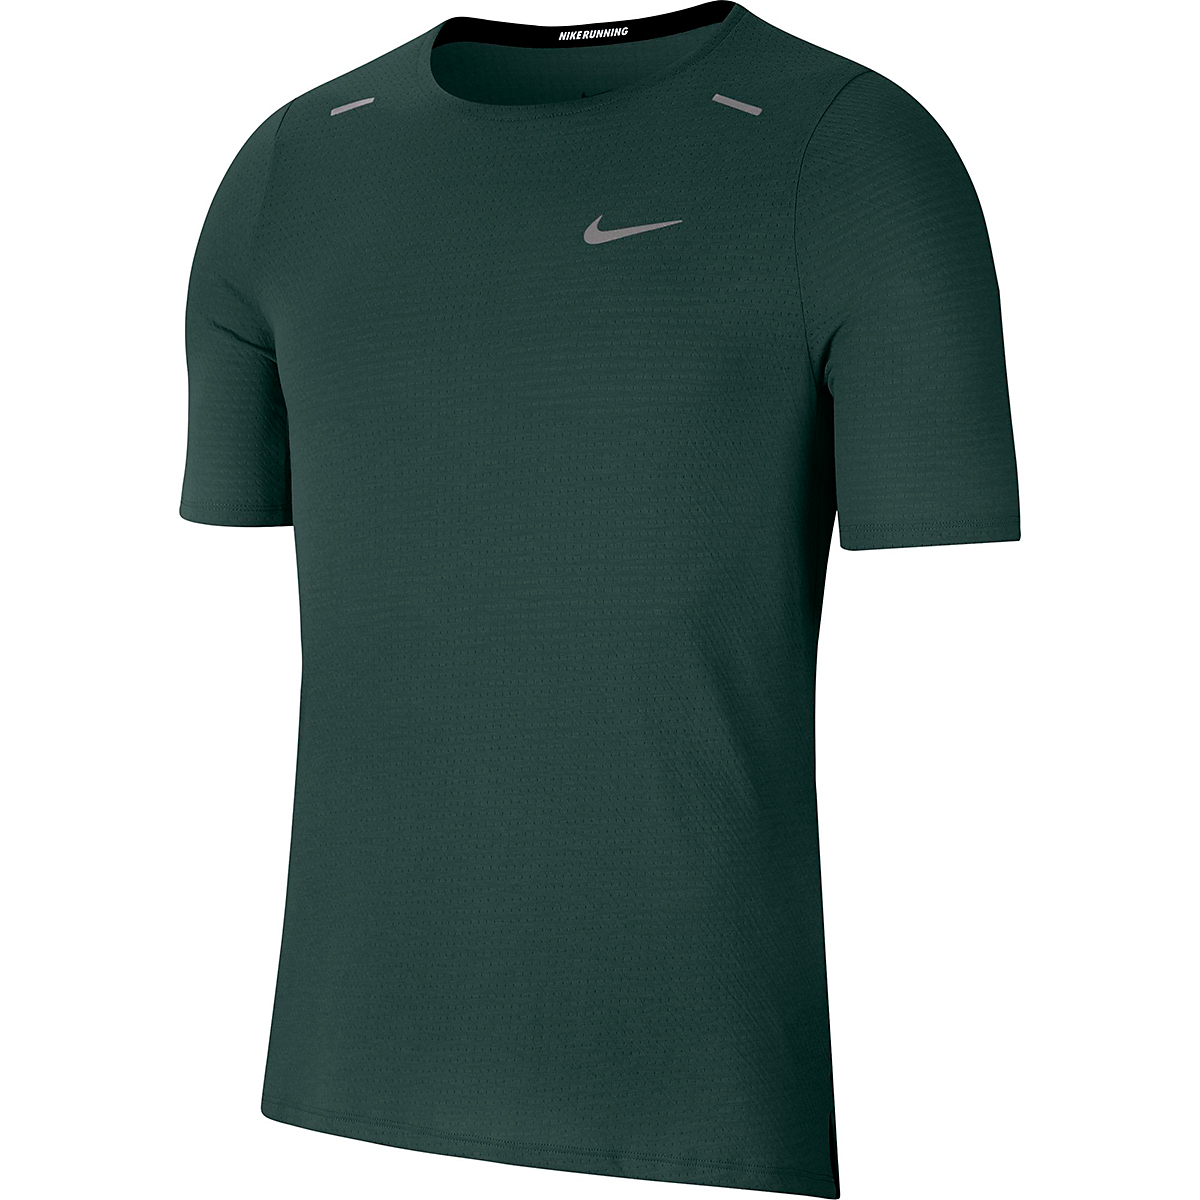 Men's Nike Rise 365 Running Top - Color: Pro Green - Size: S, Pro Green, large, image 1